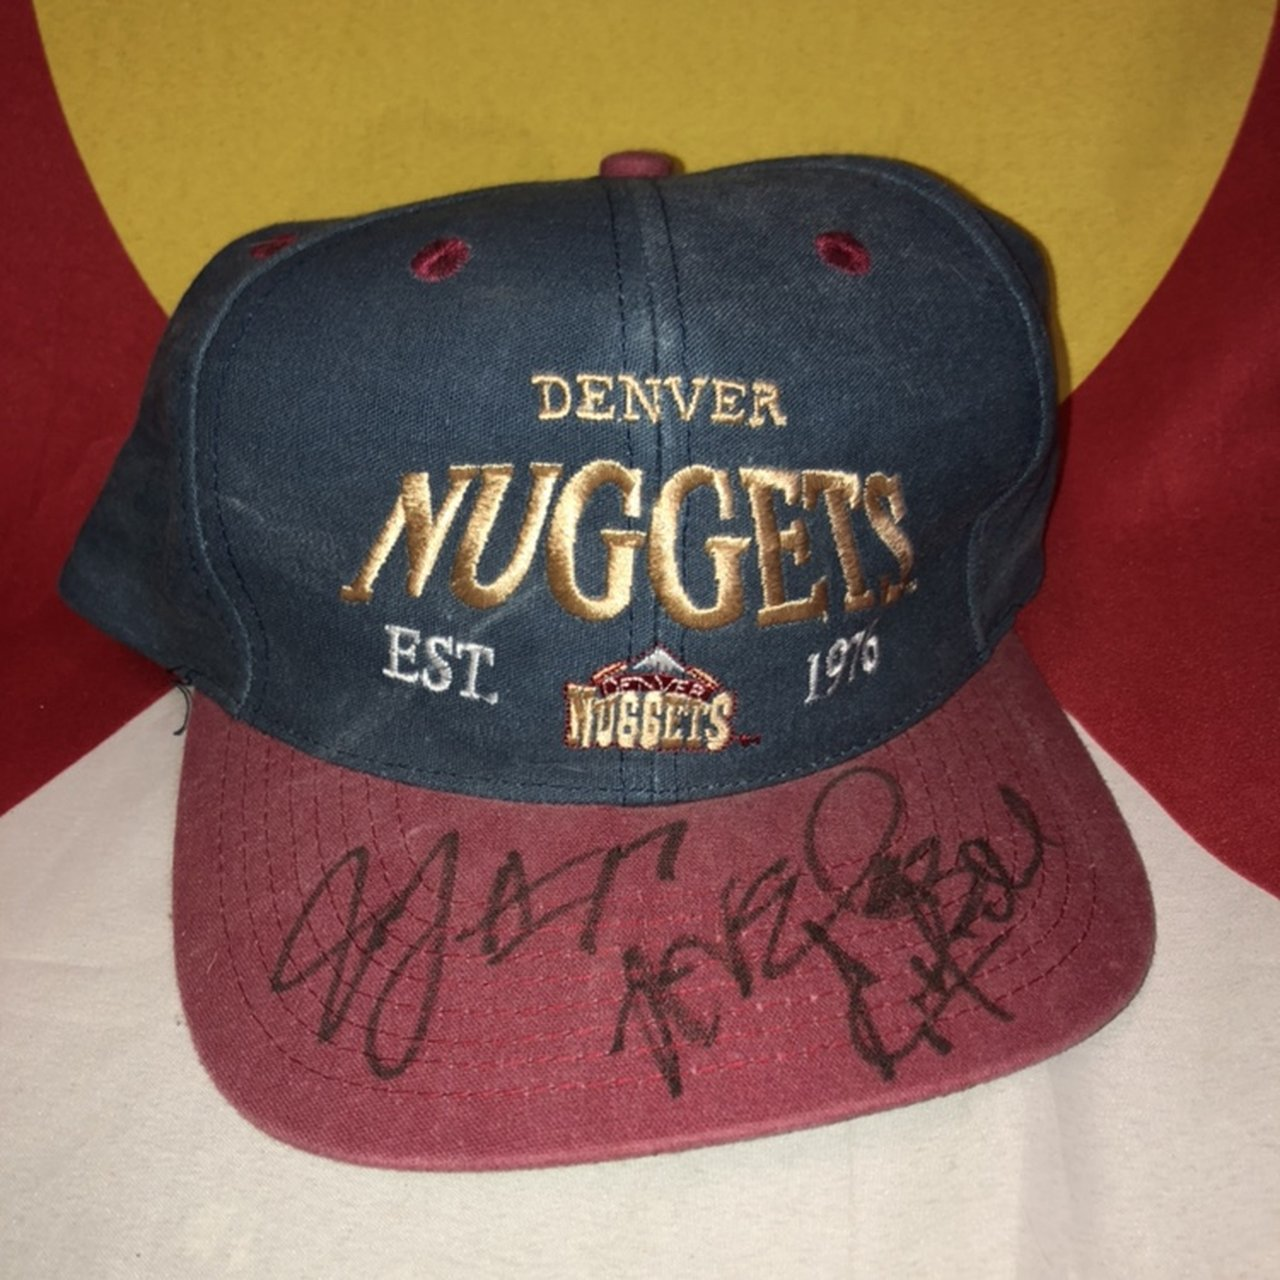 be1db6bf1acb4 Denver Nuggets Vintage SnapBack Hat Signed NBA Mile High + - Depop